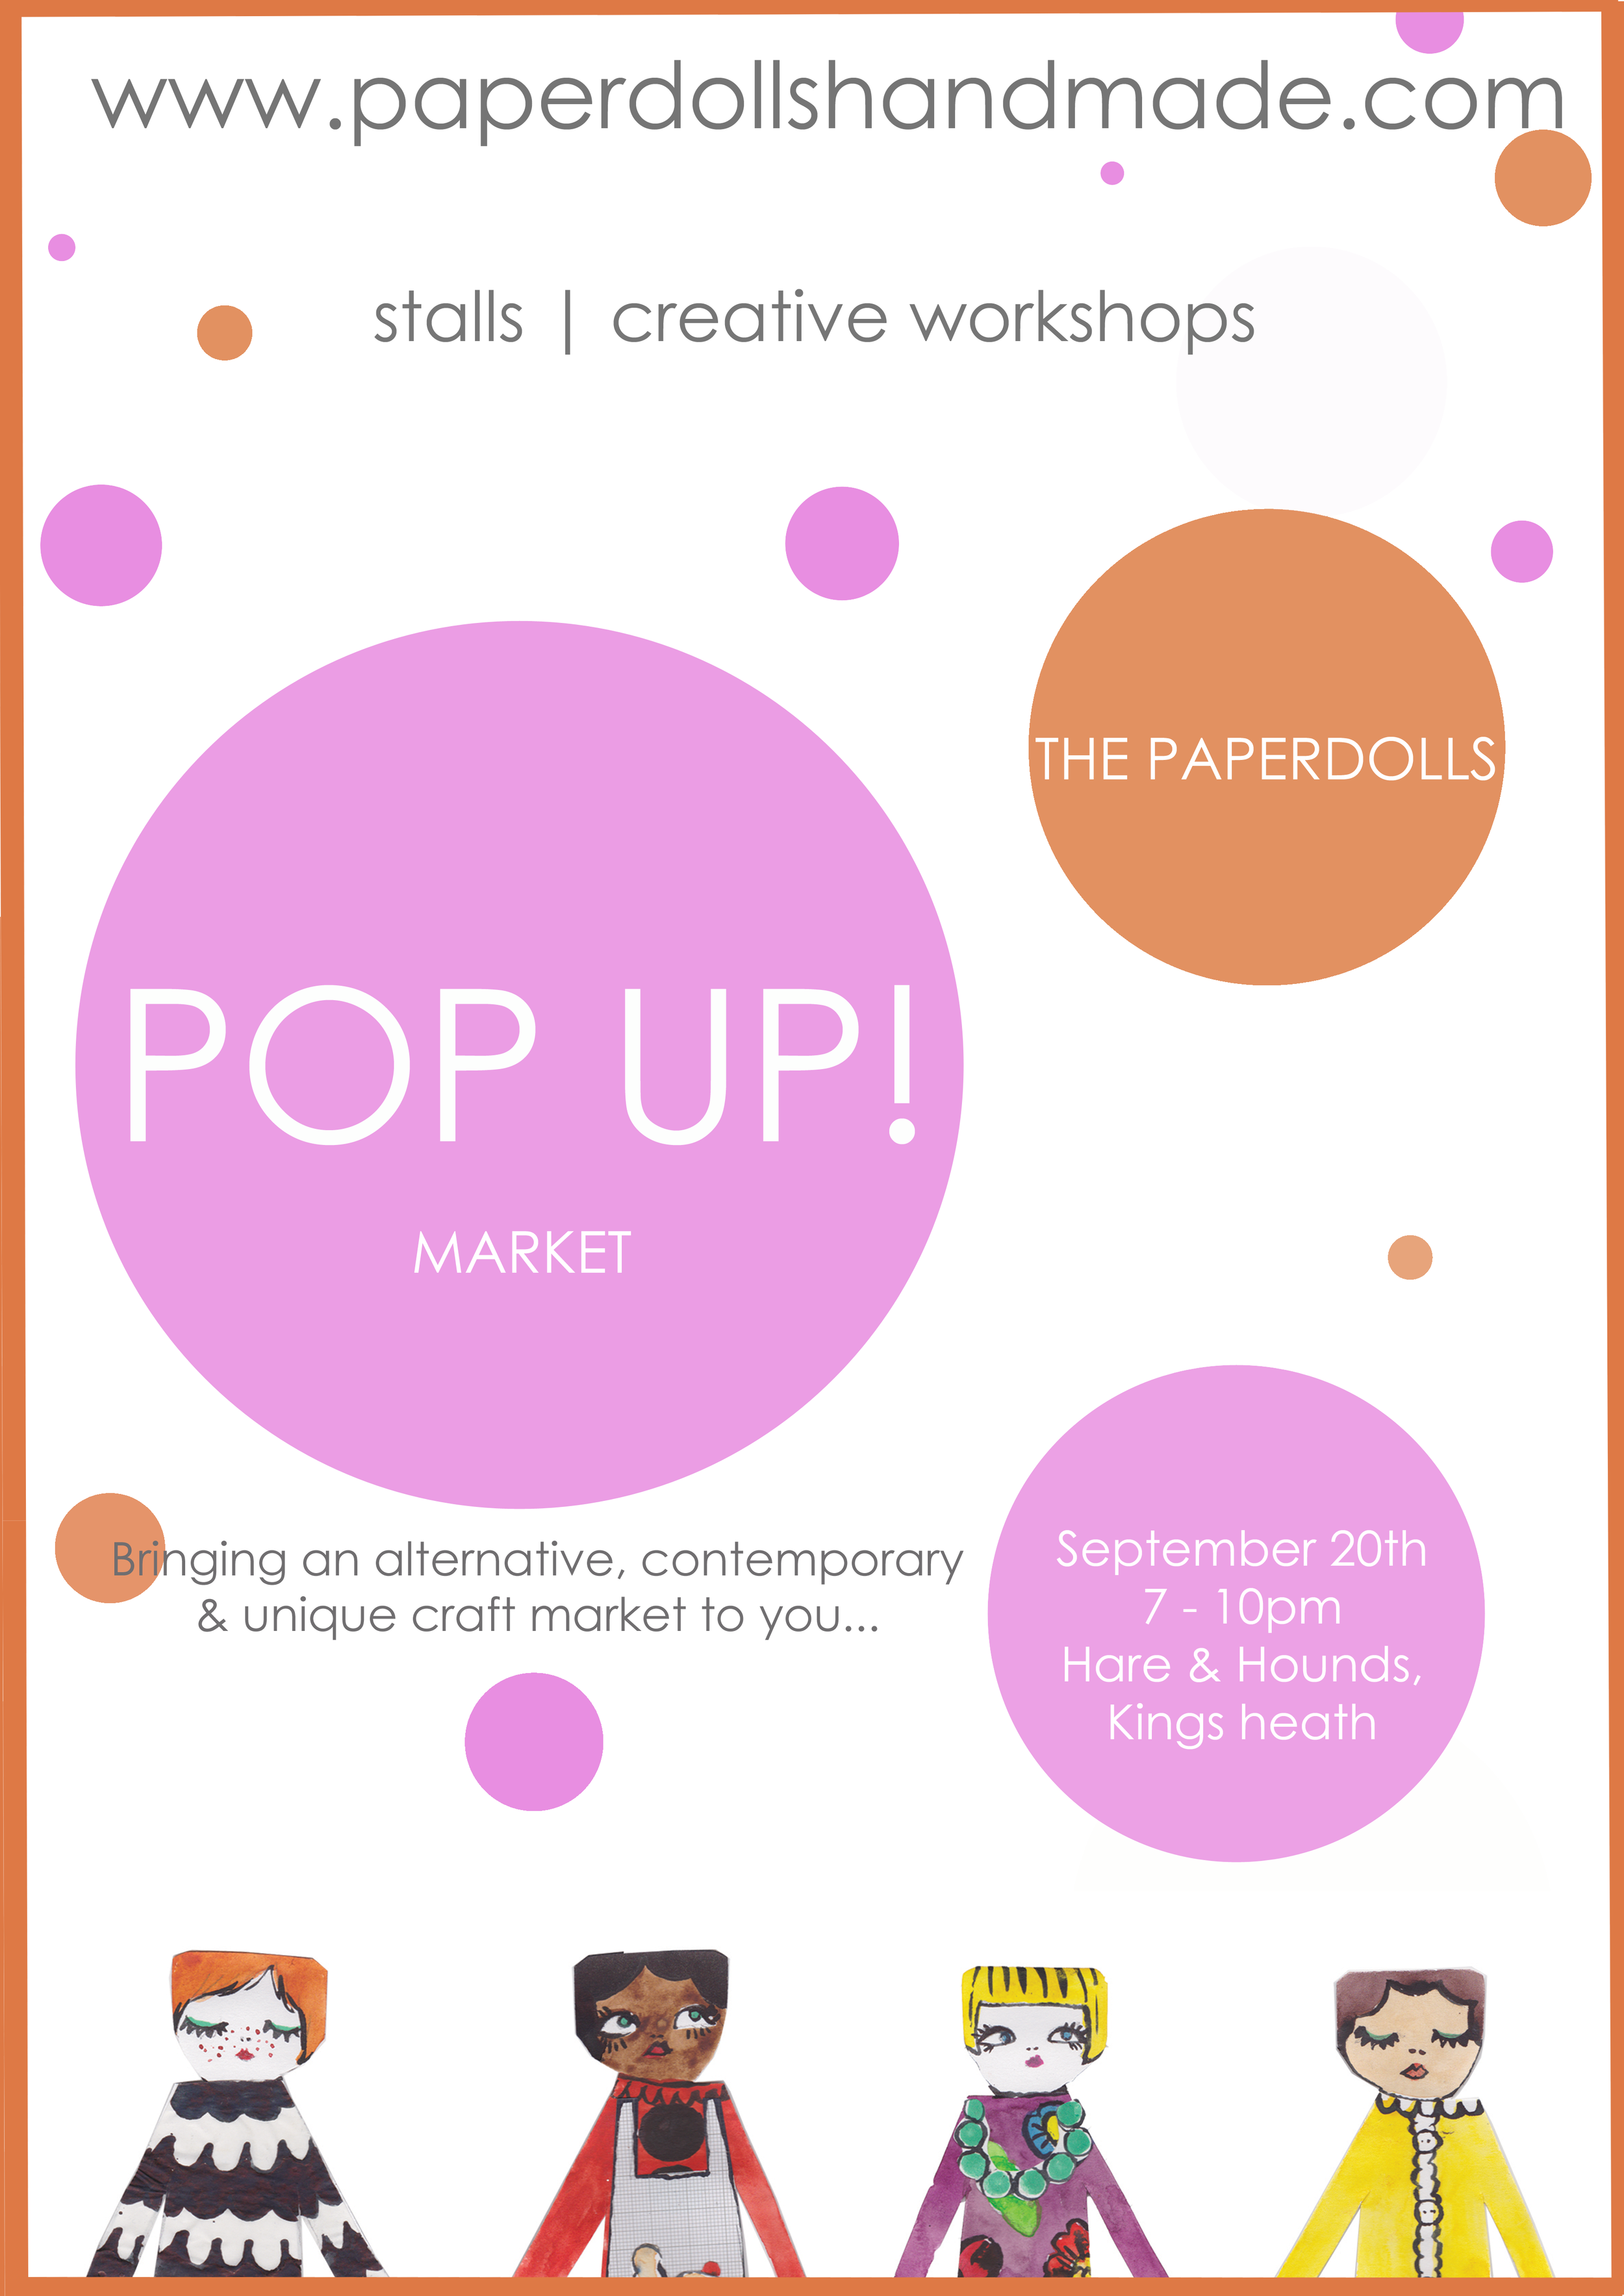 The Paperdolls POP UP market - September 20th